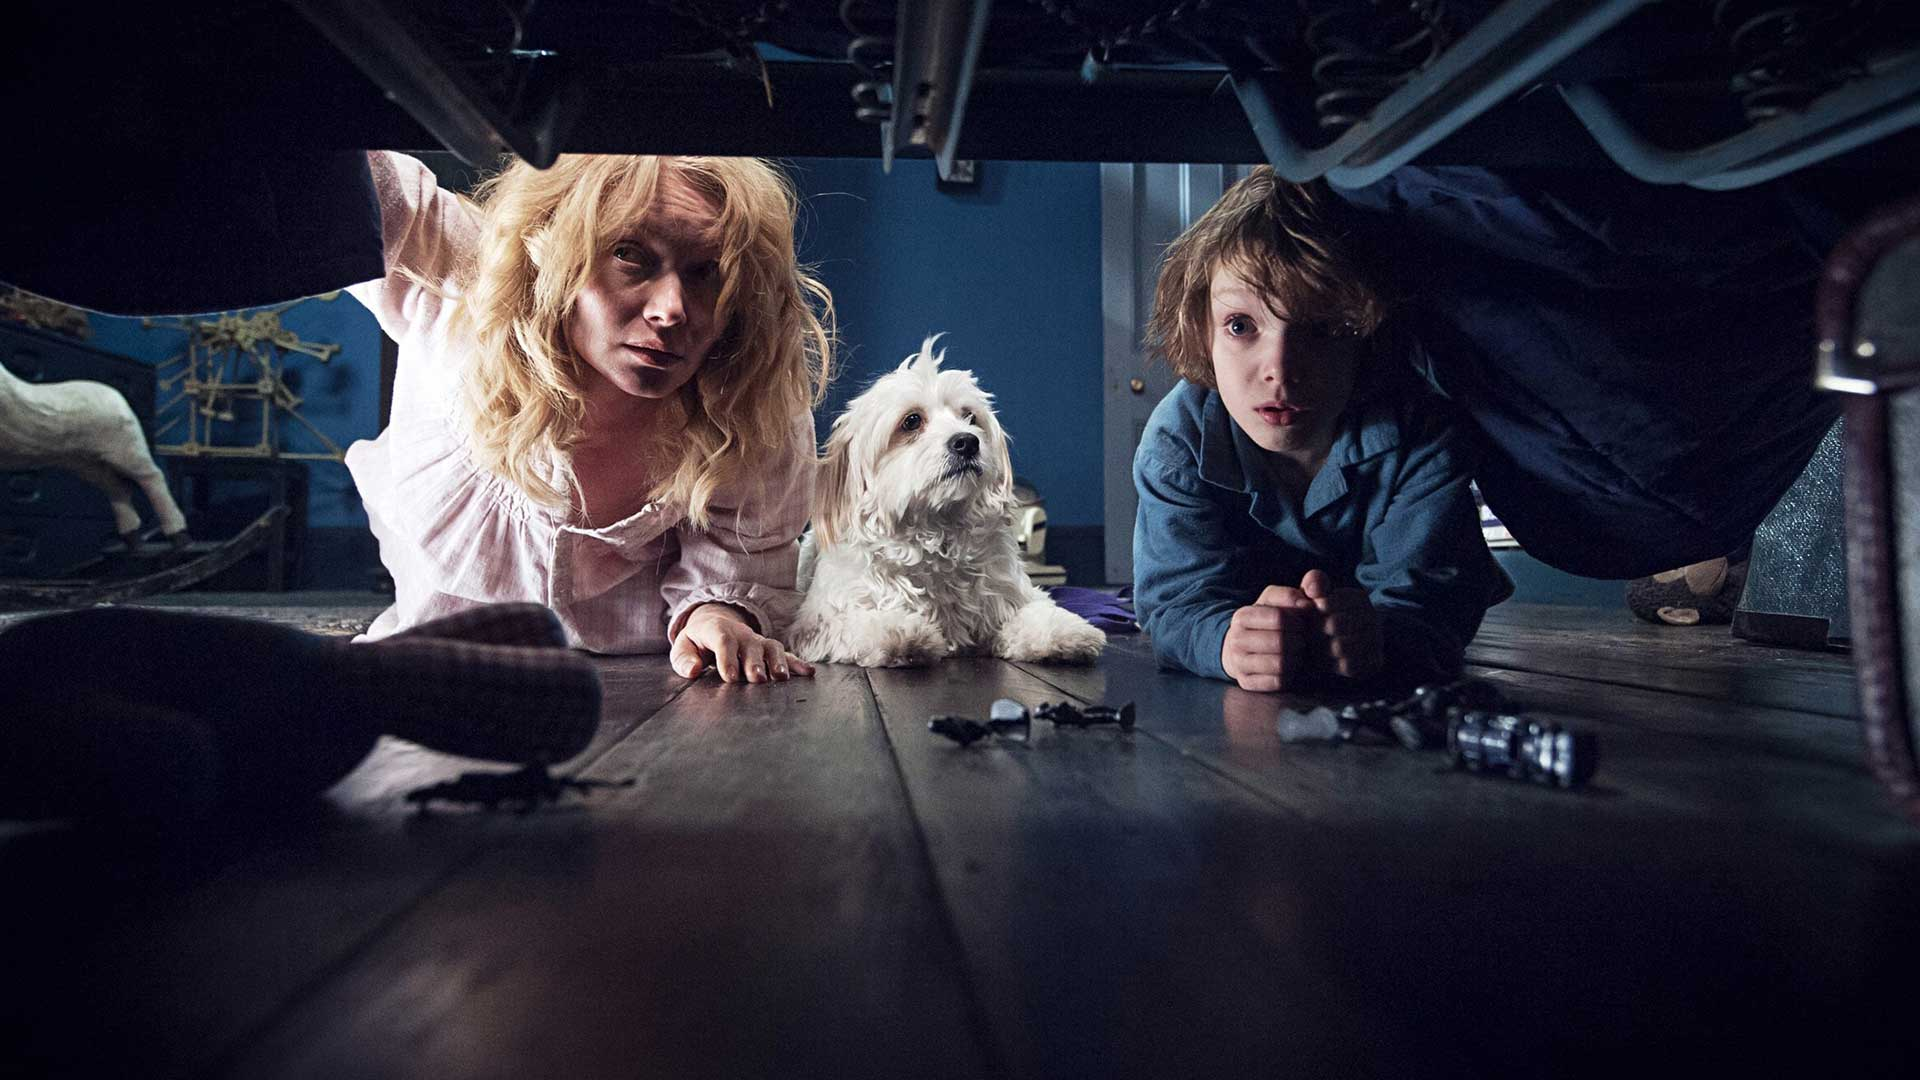 The Babadook Dear Cast & Crew